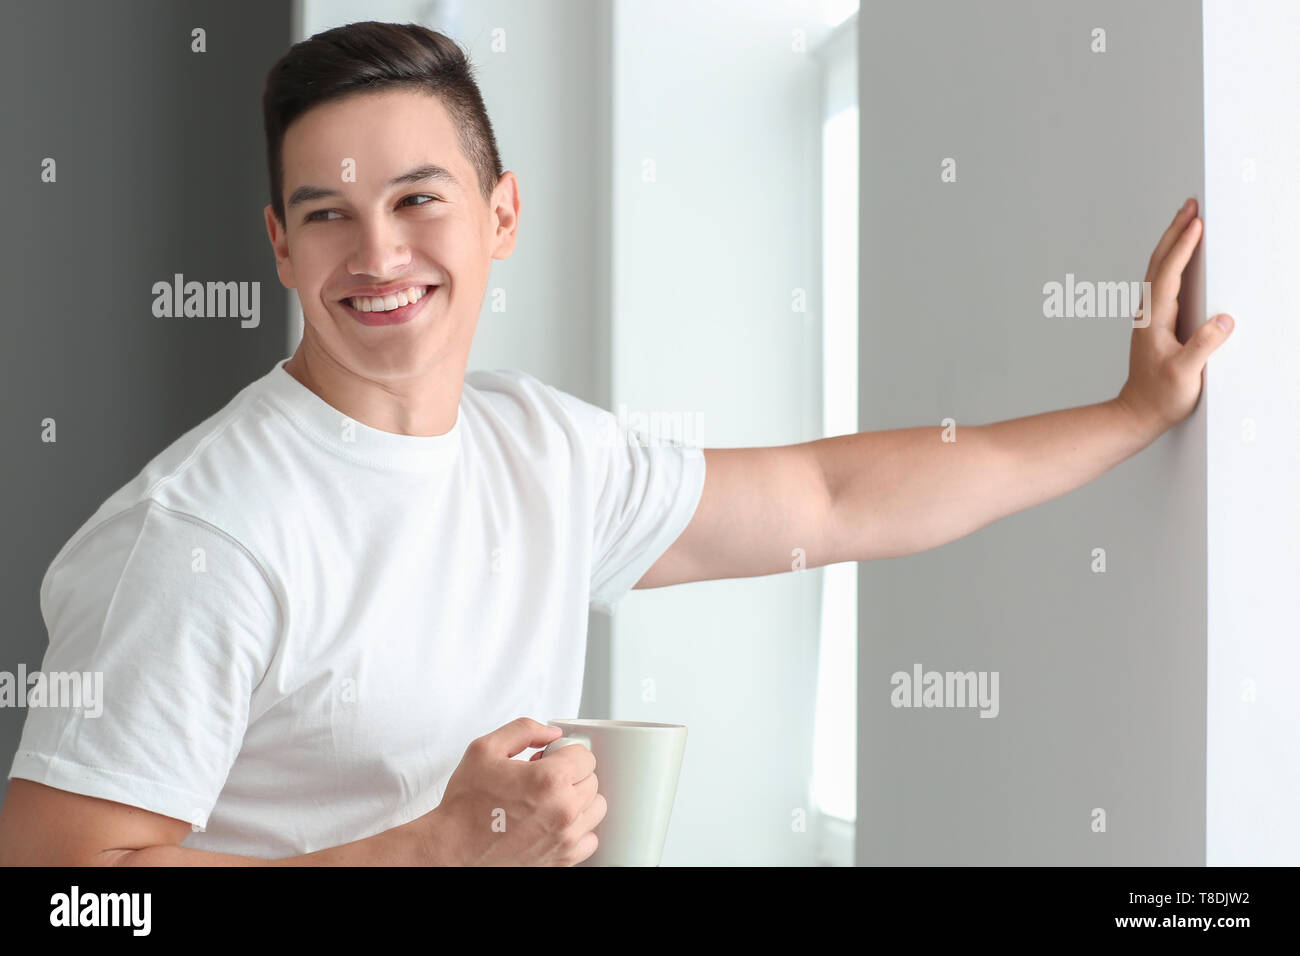 Handsome young man with cup of coffee near window - Stock Image